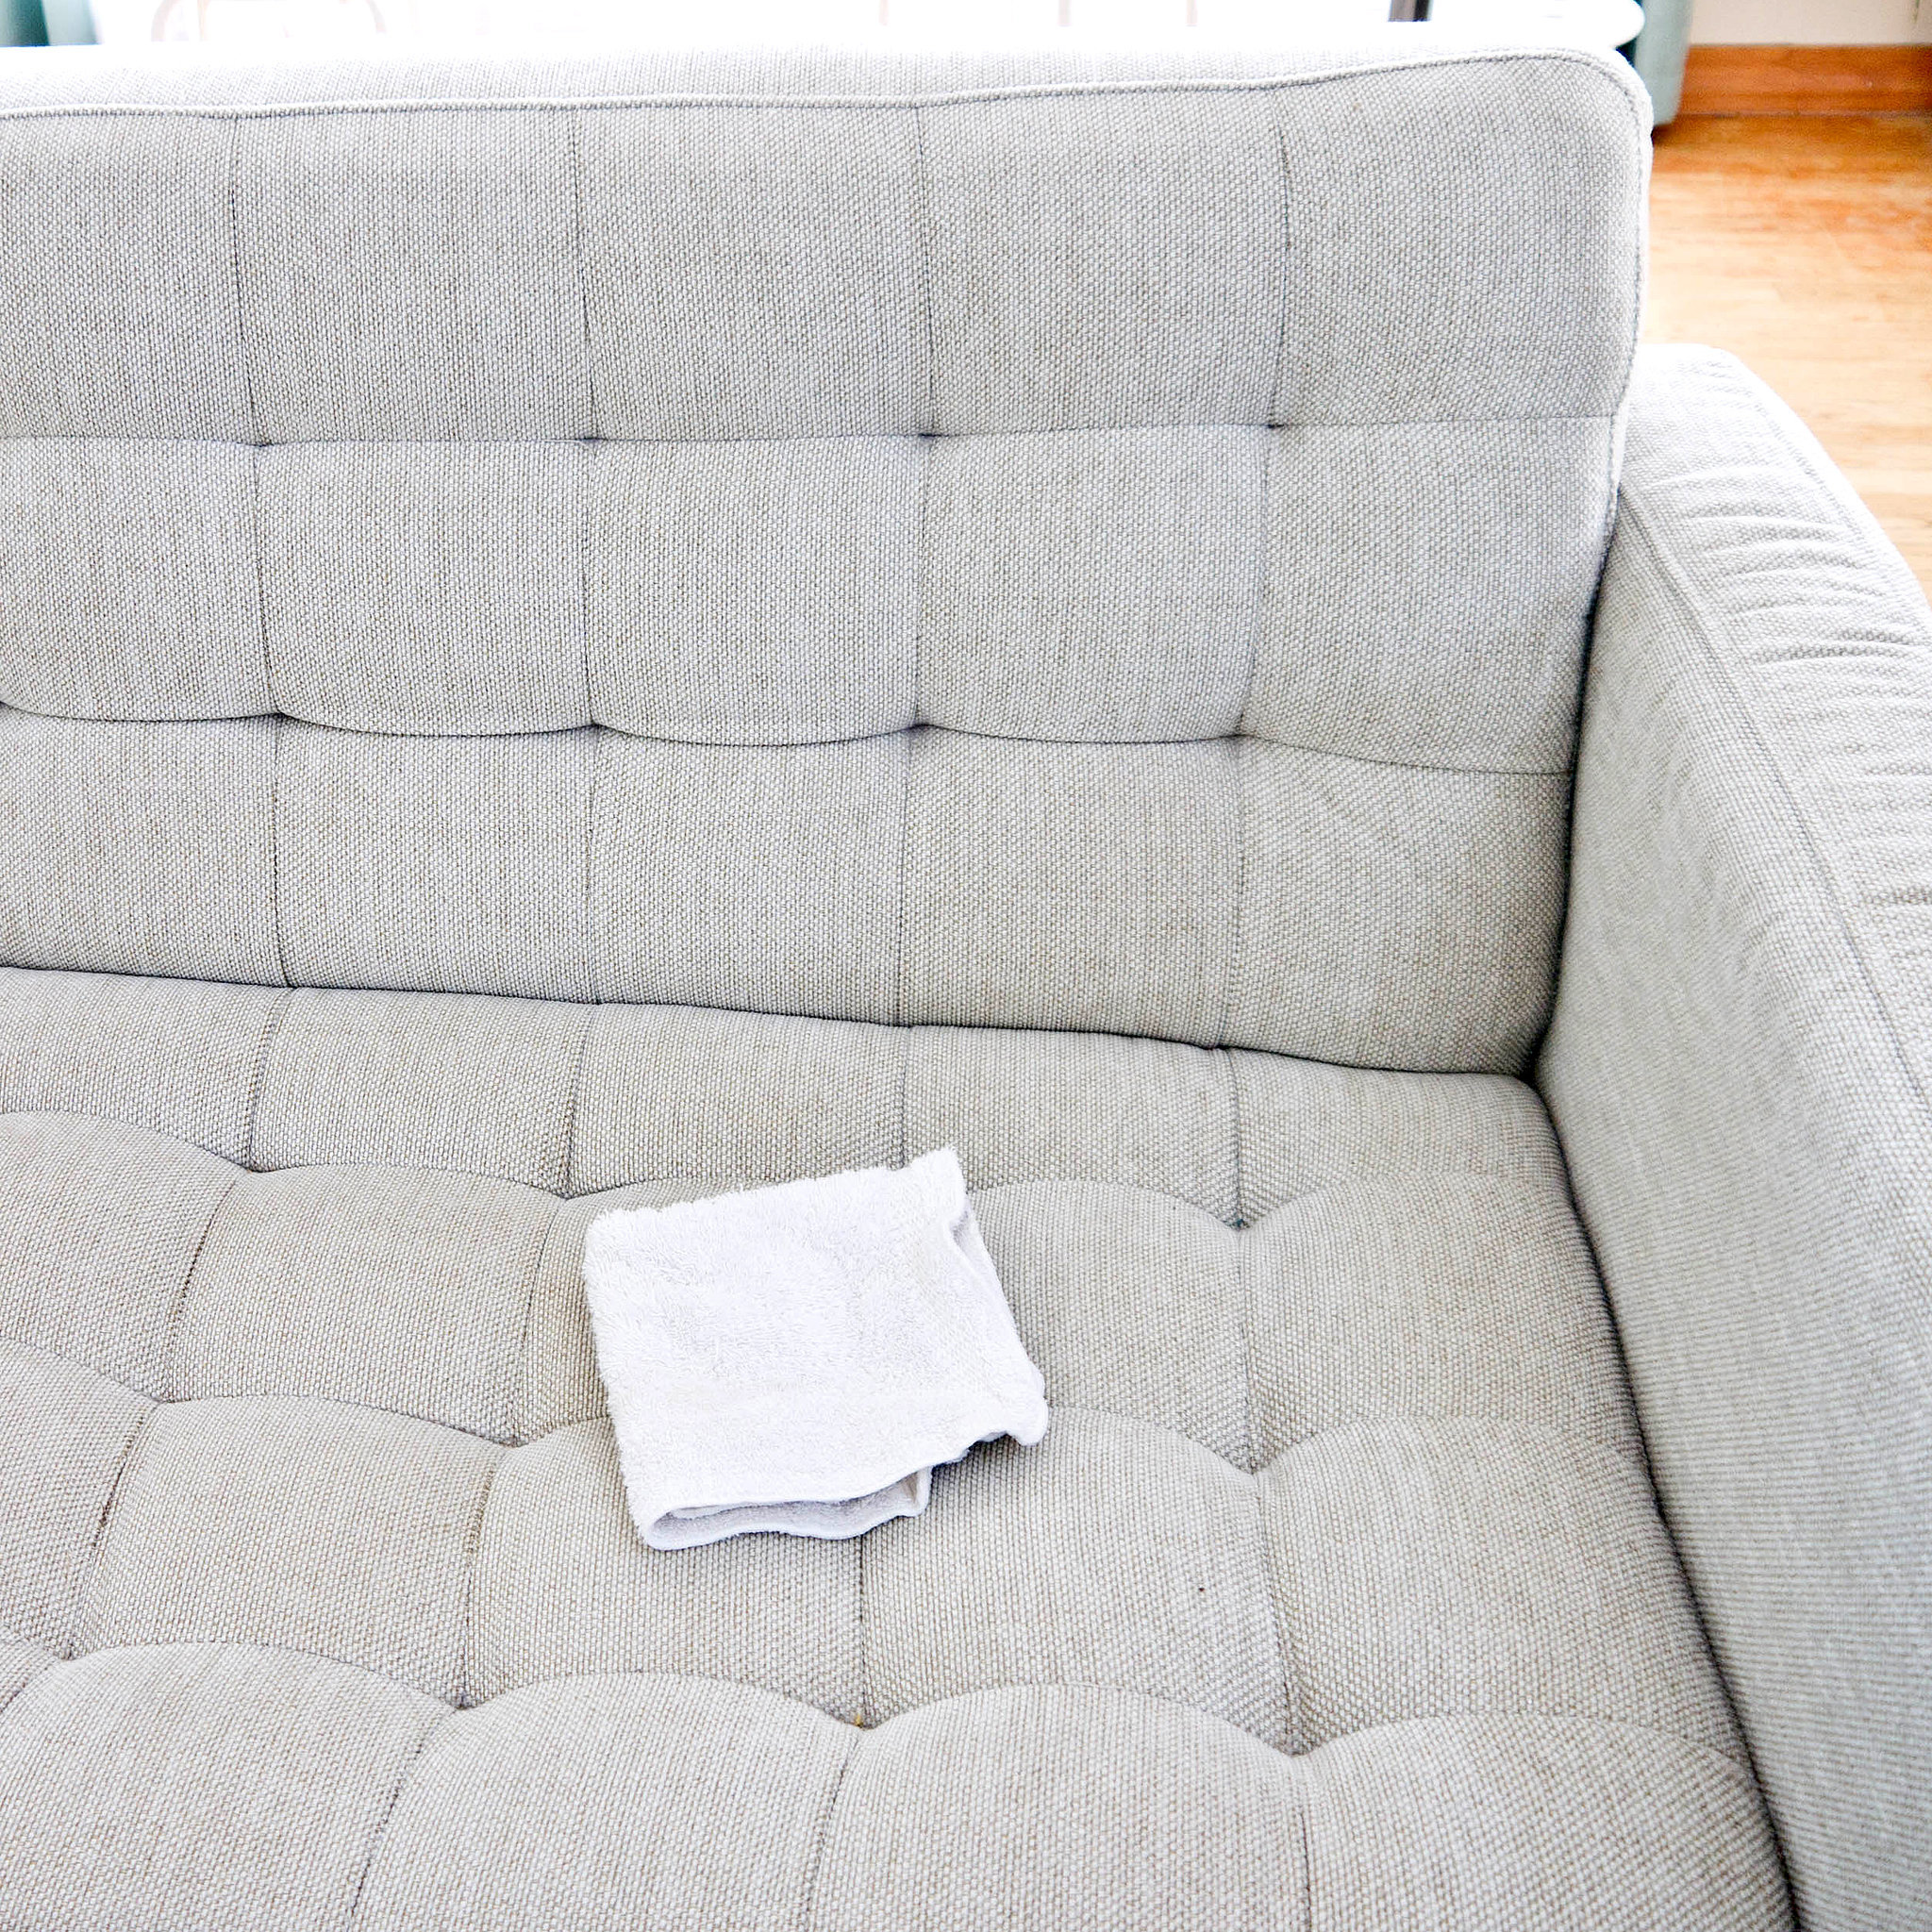 How To Clean Your Couch Popsugar Australia Smart Living